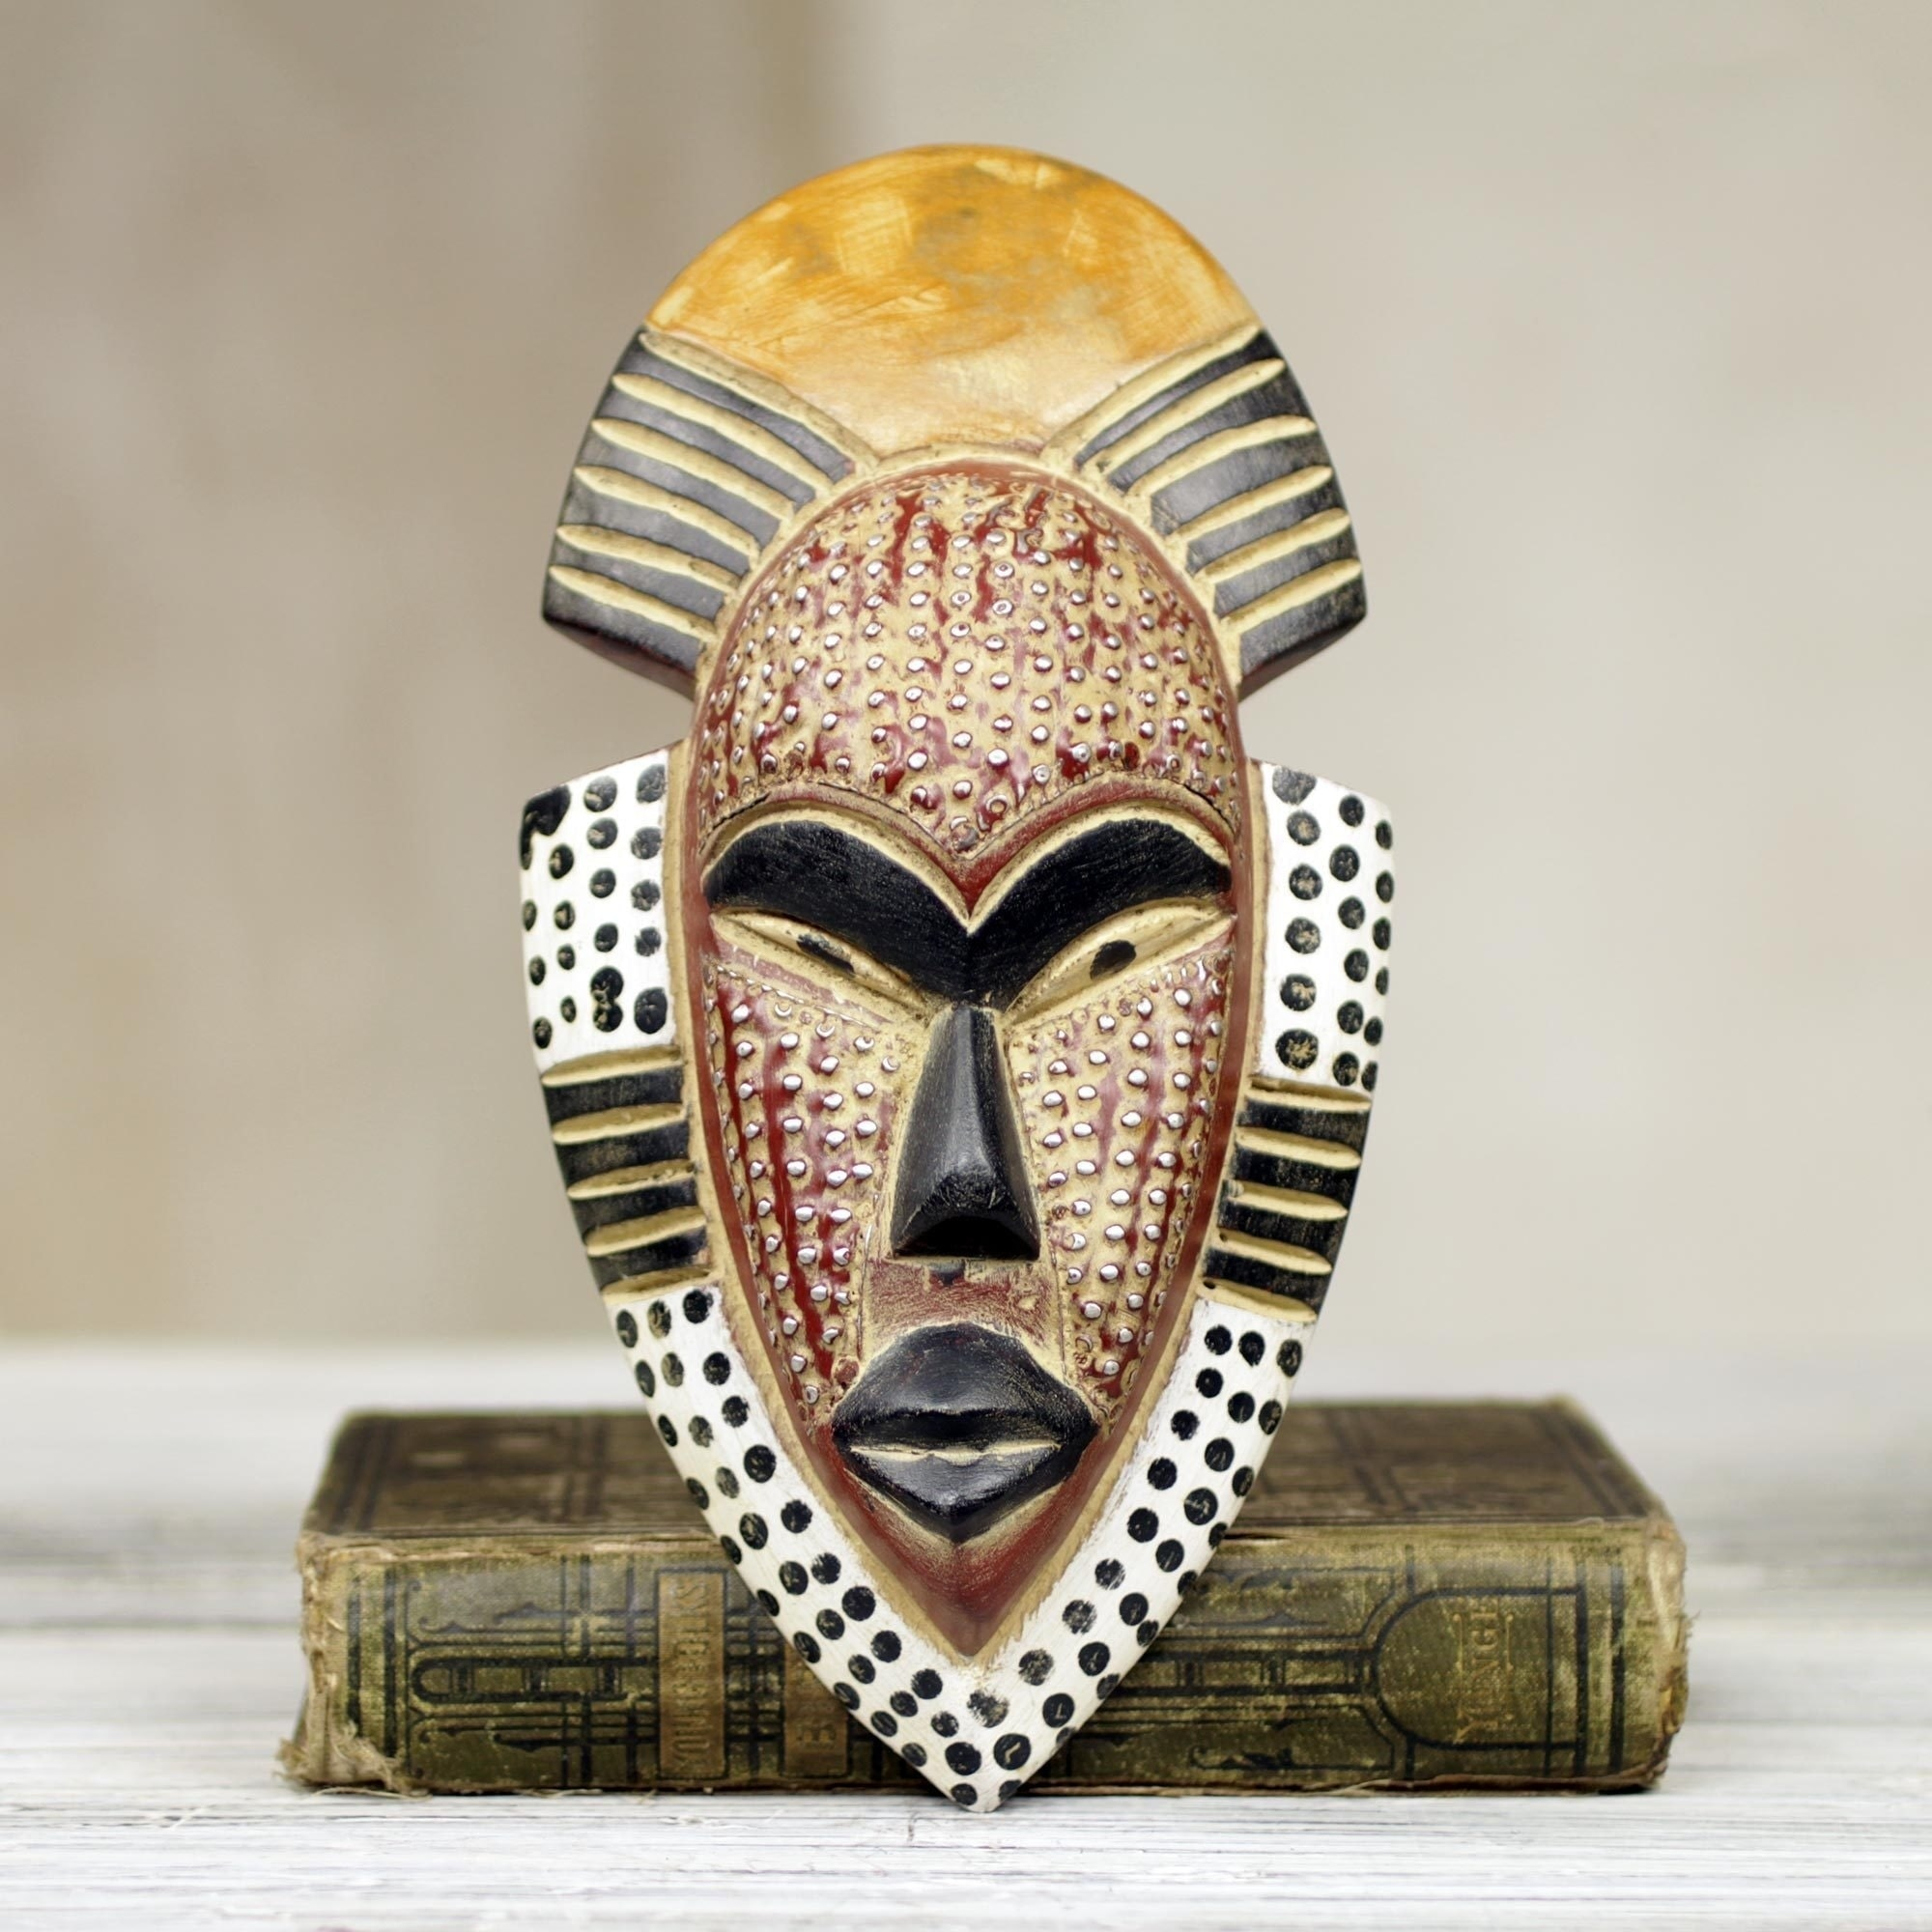 African-american dating african ghana masks purpose